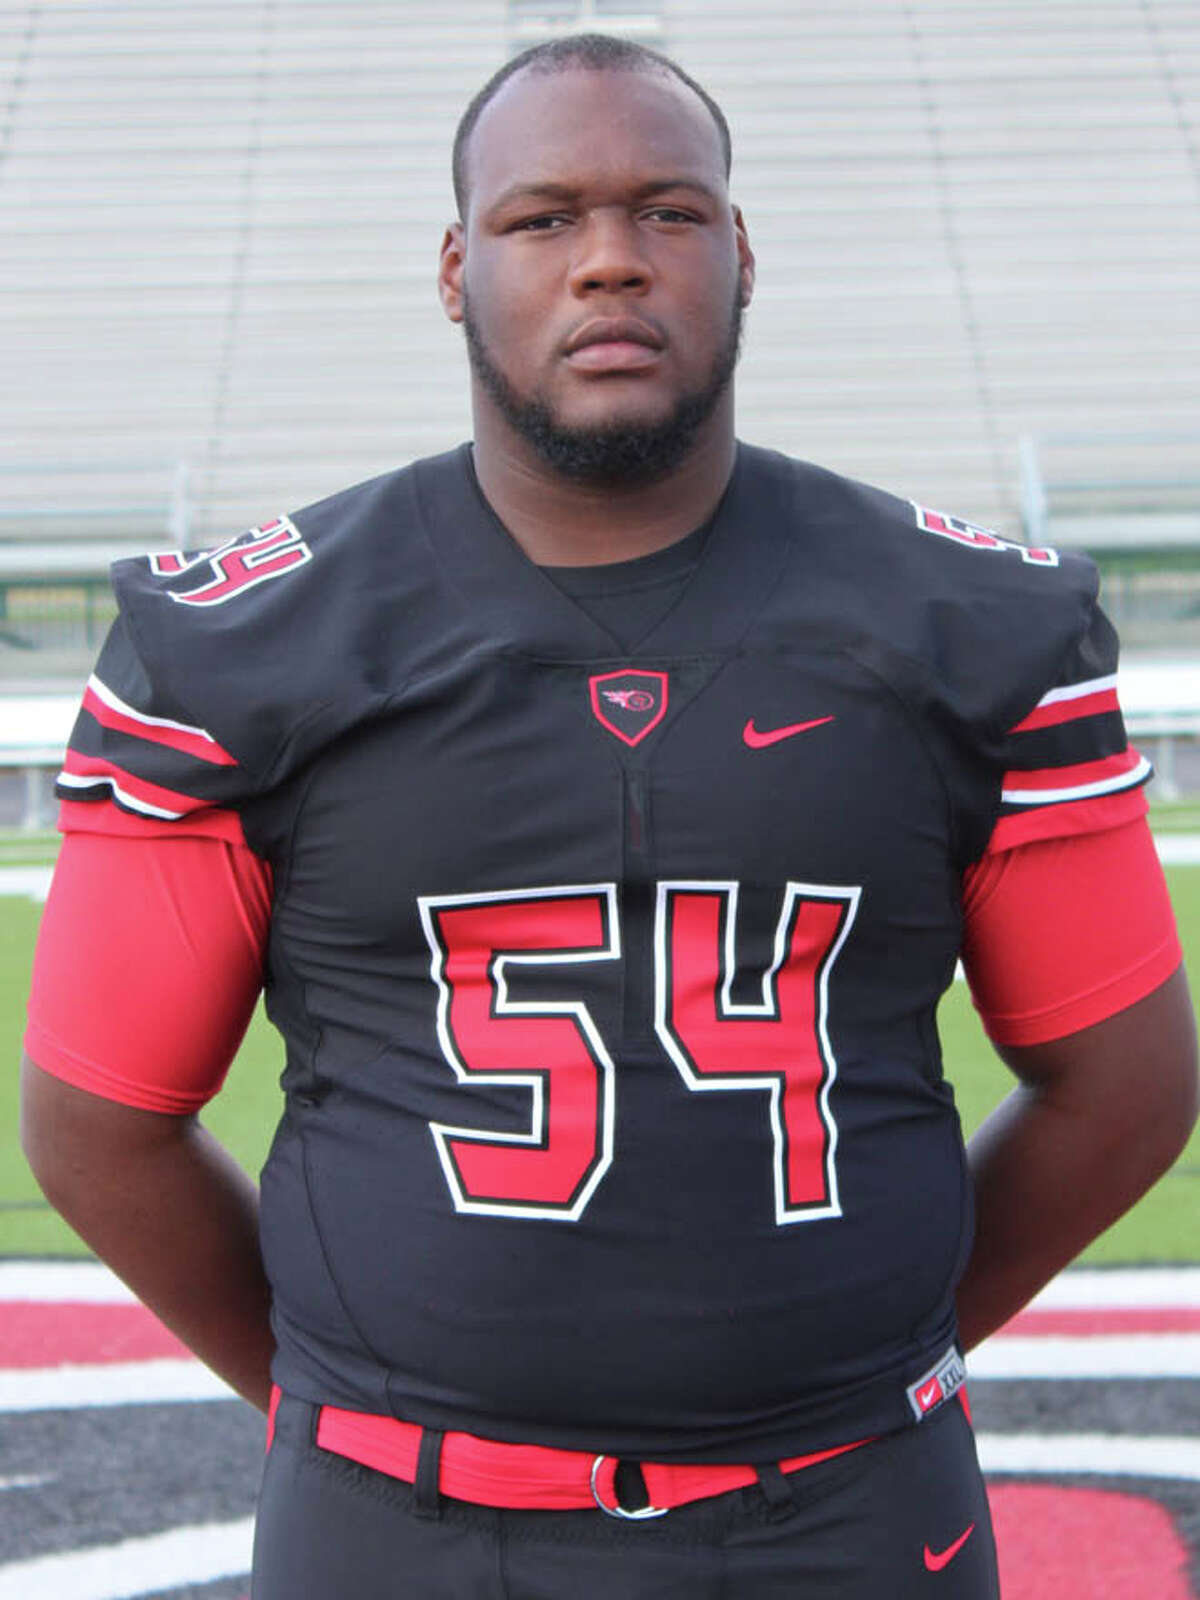 Brandon Jackson, Port Arthur Memorial Position: DT Height: 6-1 Weight: 275 pounds Grade: Senior With his explosiveness and strength off the blocks, Jackson will be giving opposing quarterbacks fits while trying to best his team-high seven sacks from last year.